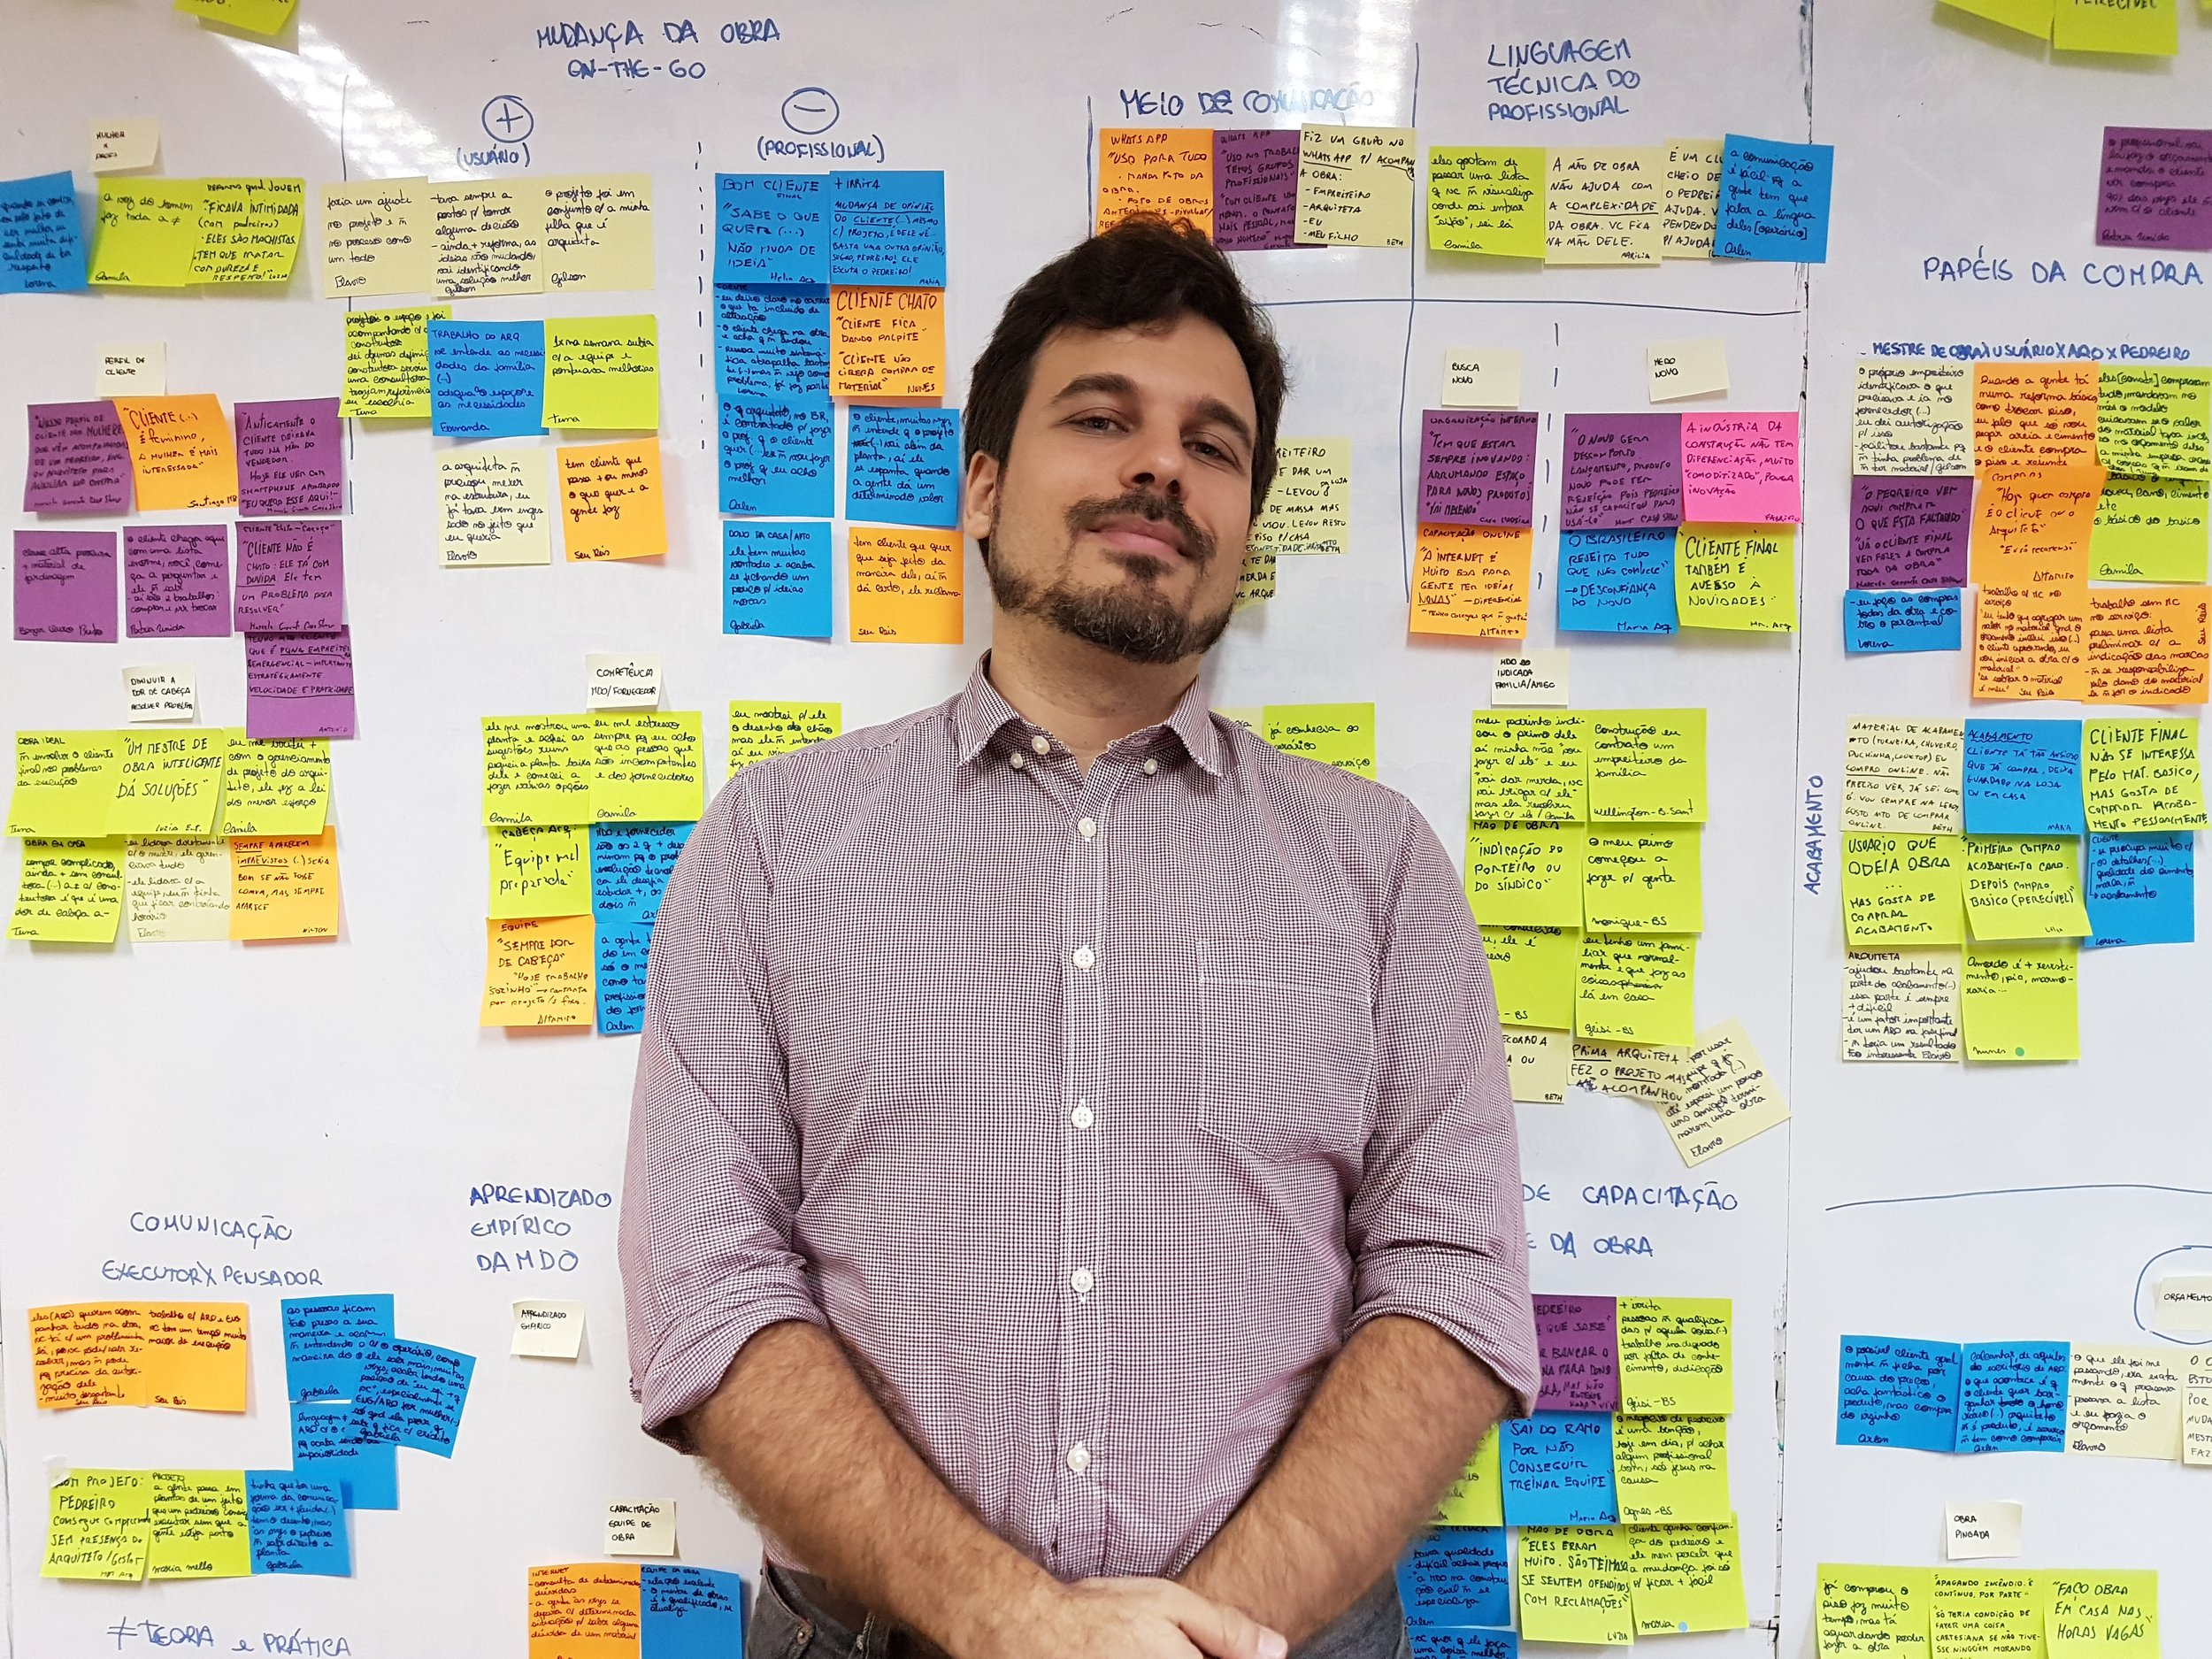 Proud of the amazing post-it wall filled with the result of two weeks of interviews.